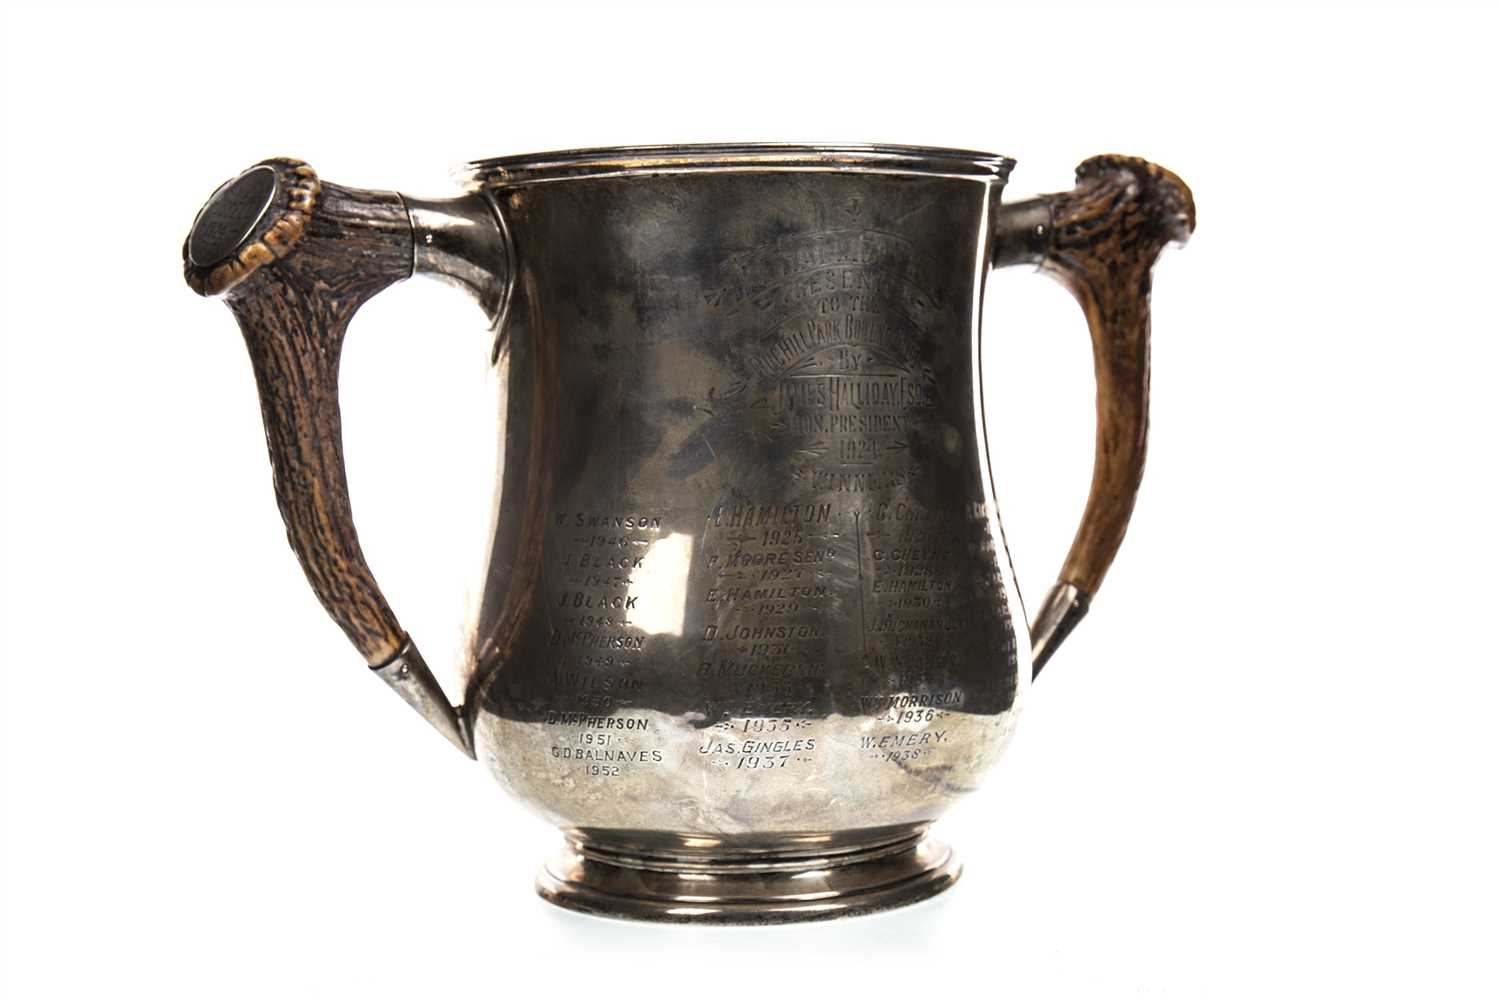 Lot 1917-THE HALLIDAY BOWLING CUP - A HORN HANDLED SILVER TROPHY CUP